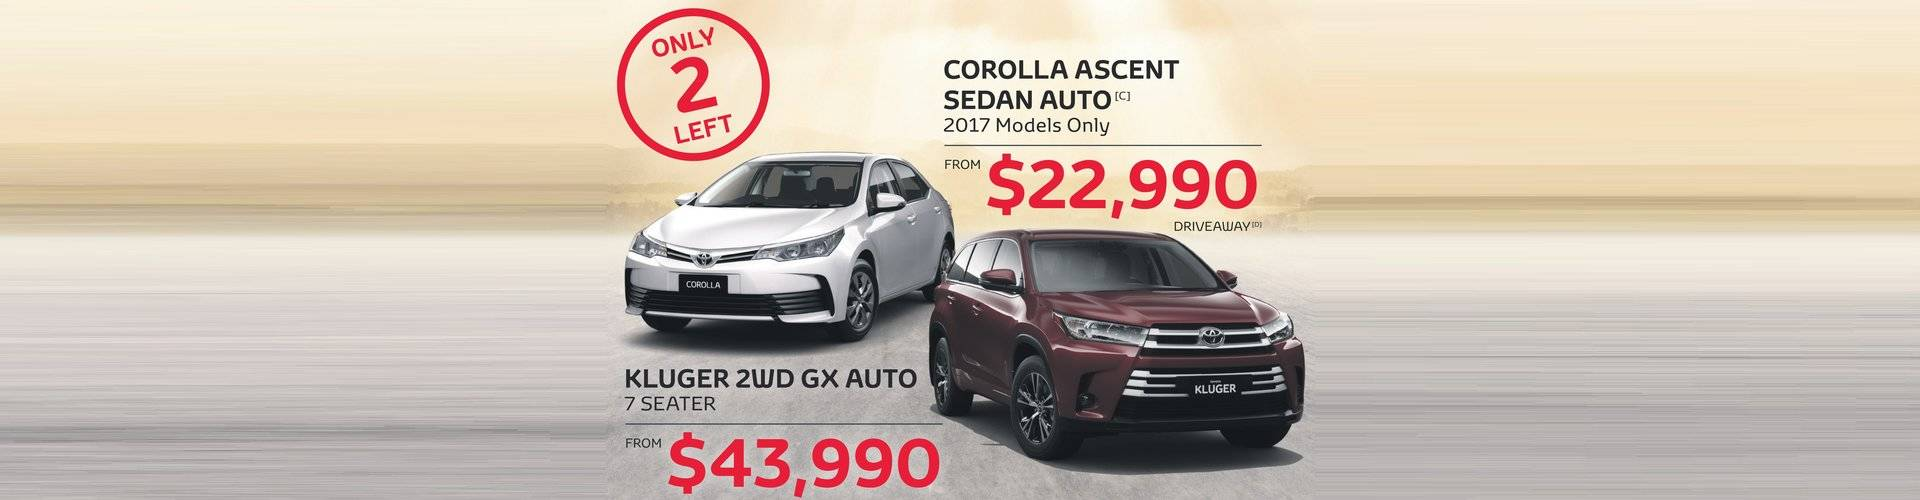 Waverley Toyota Great Value on Corolla and Kluger